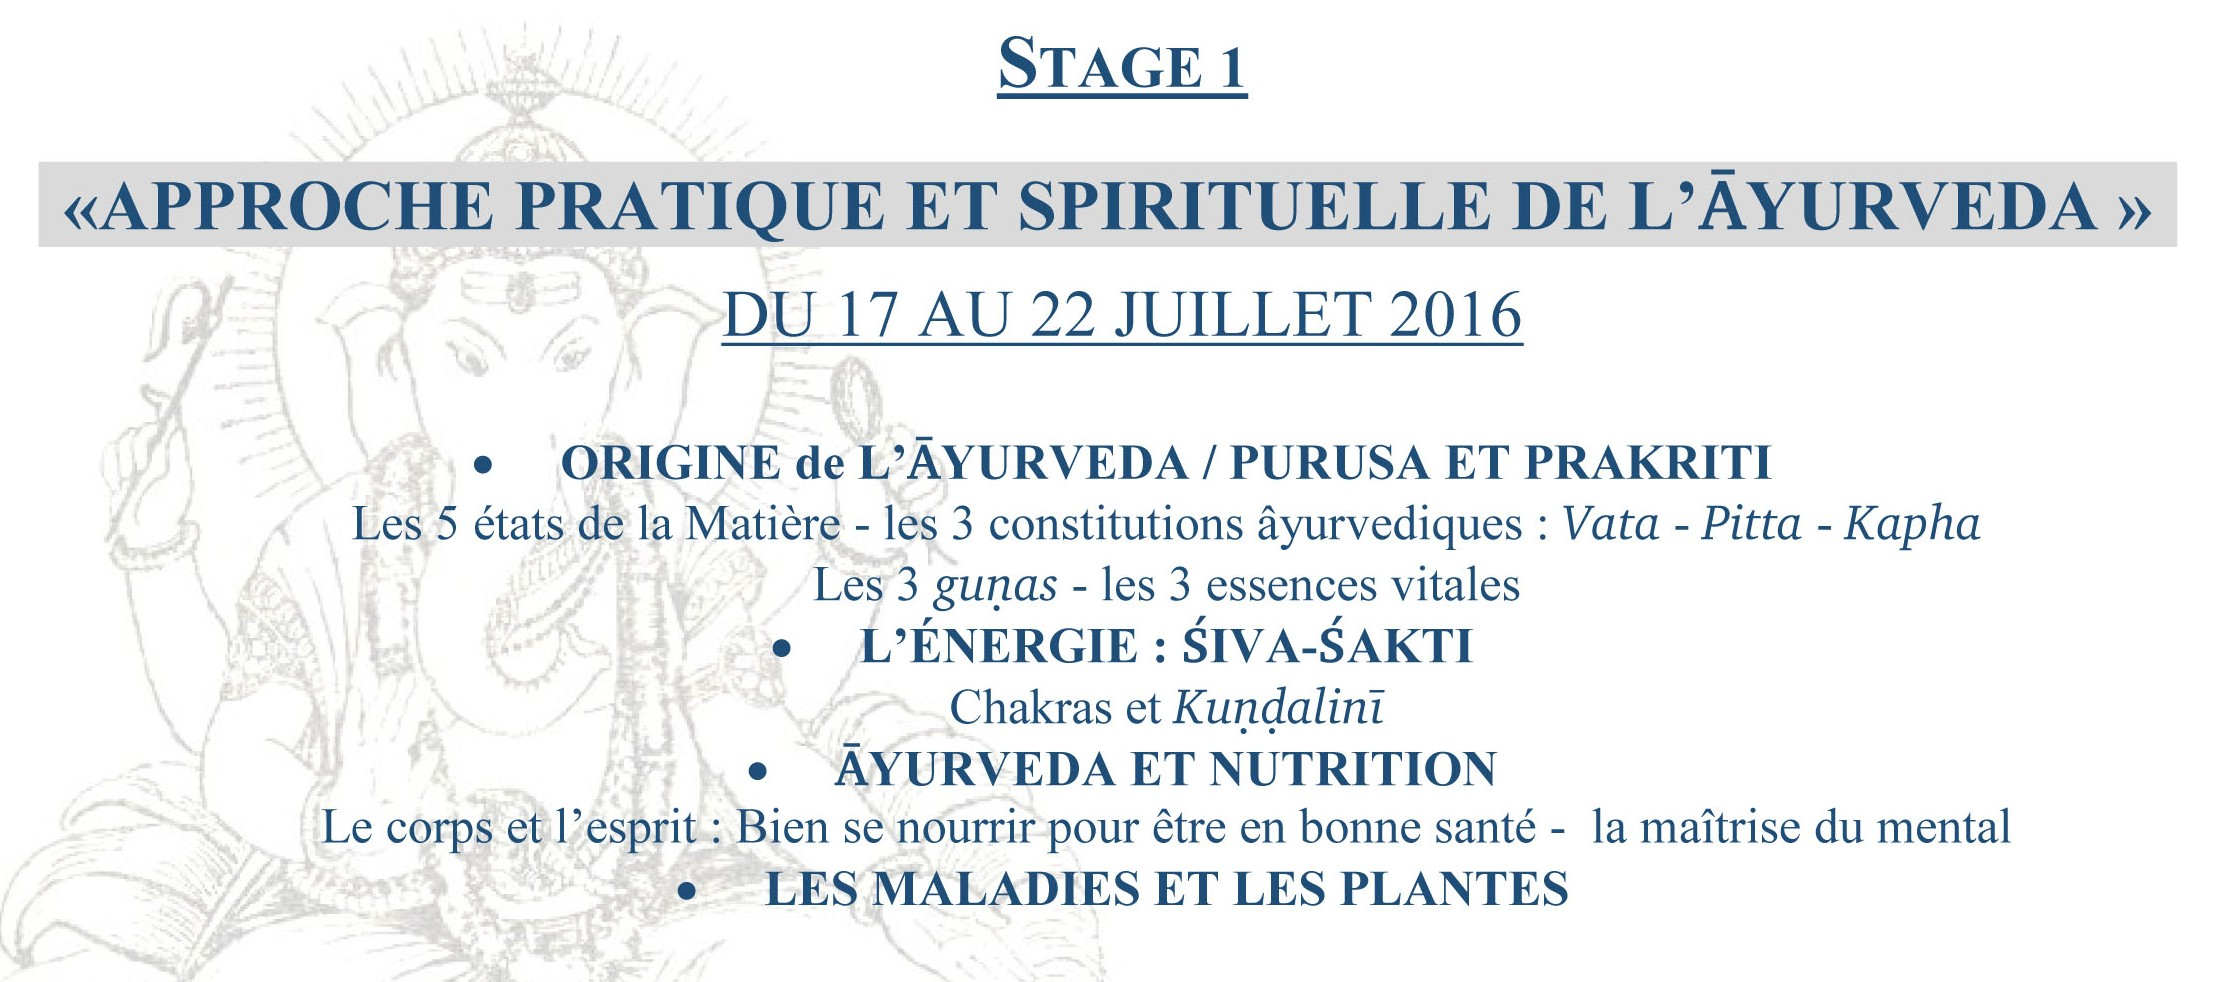 STAGE ETE 2016 STAGE 1 rect